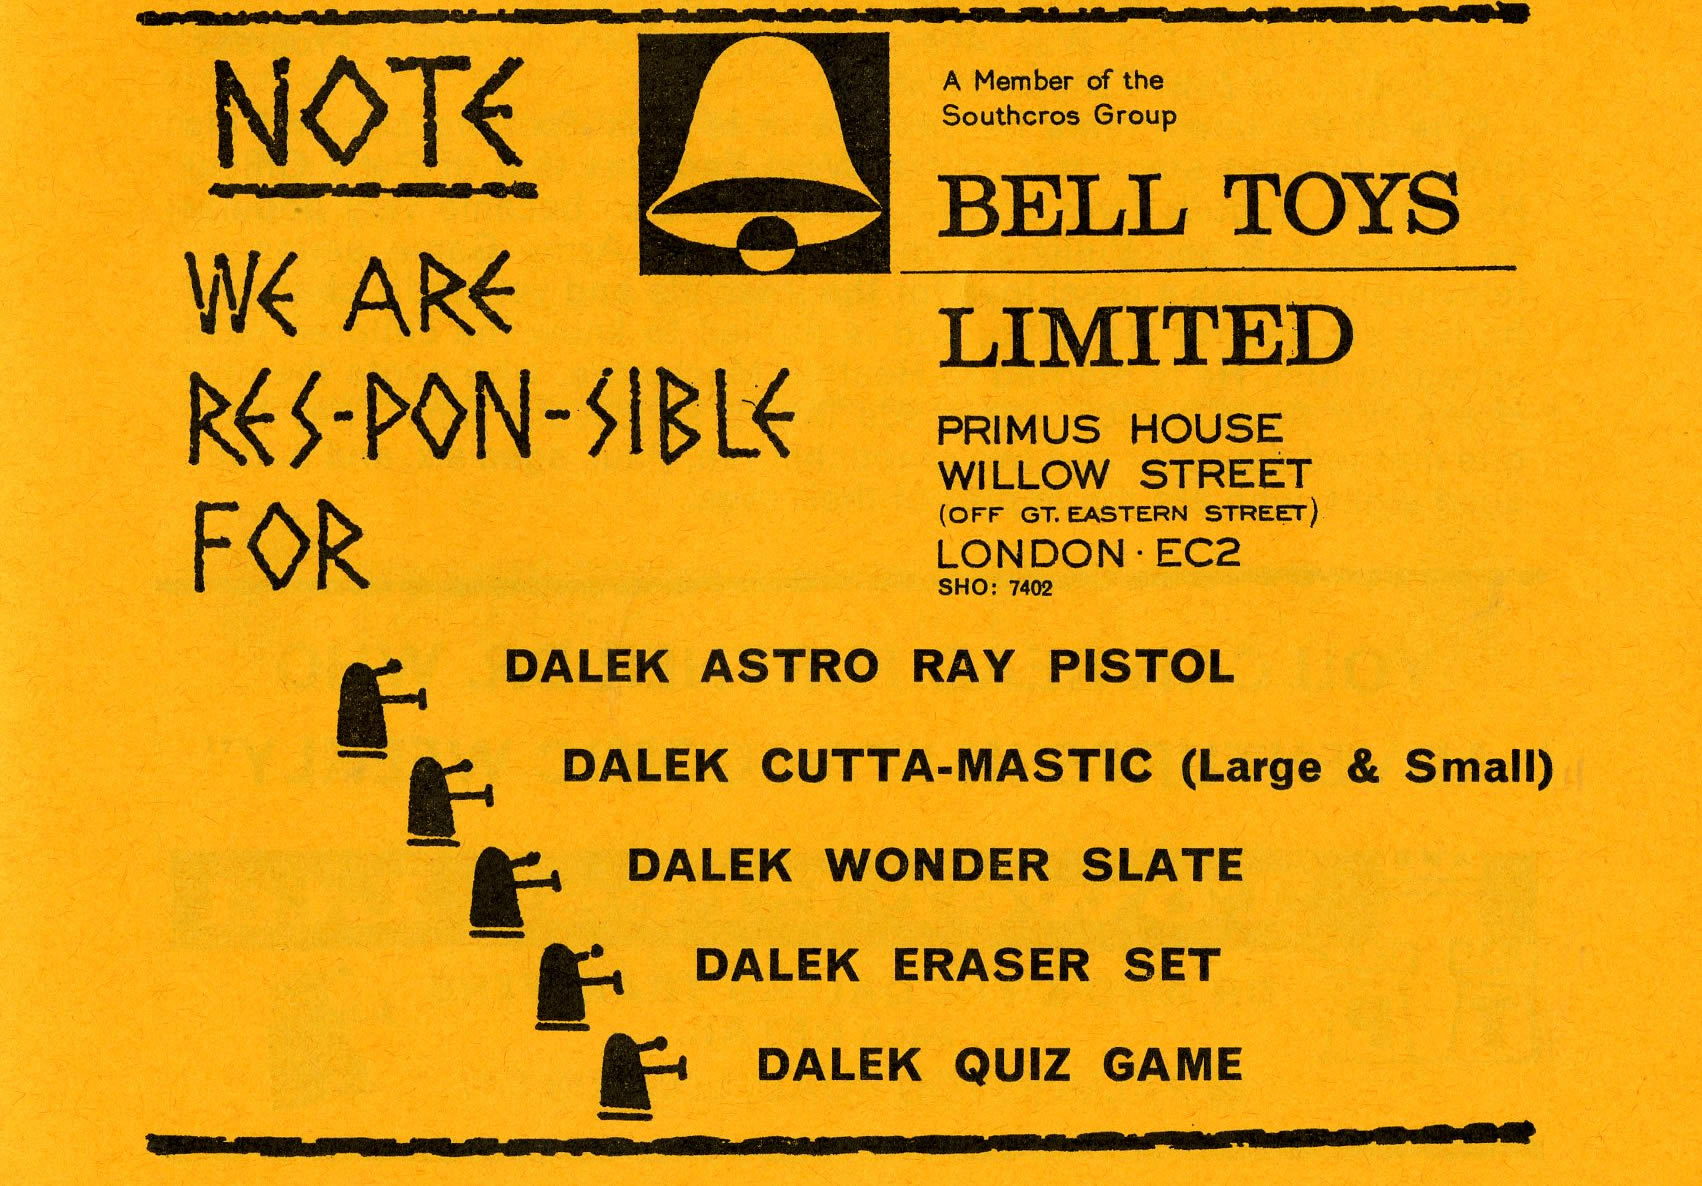 Ad. for Bell Toys Ltd. included in the Supplement to Games and Toys, September 1965